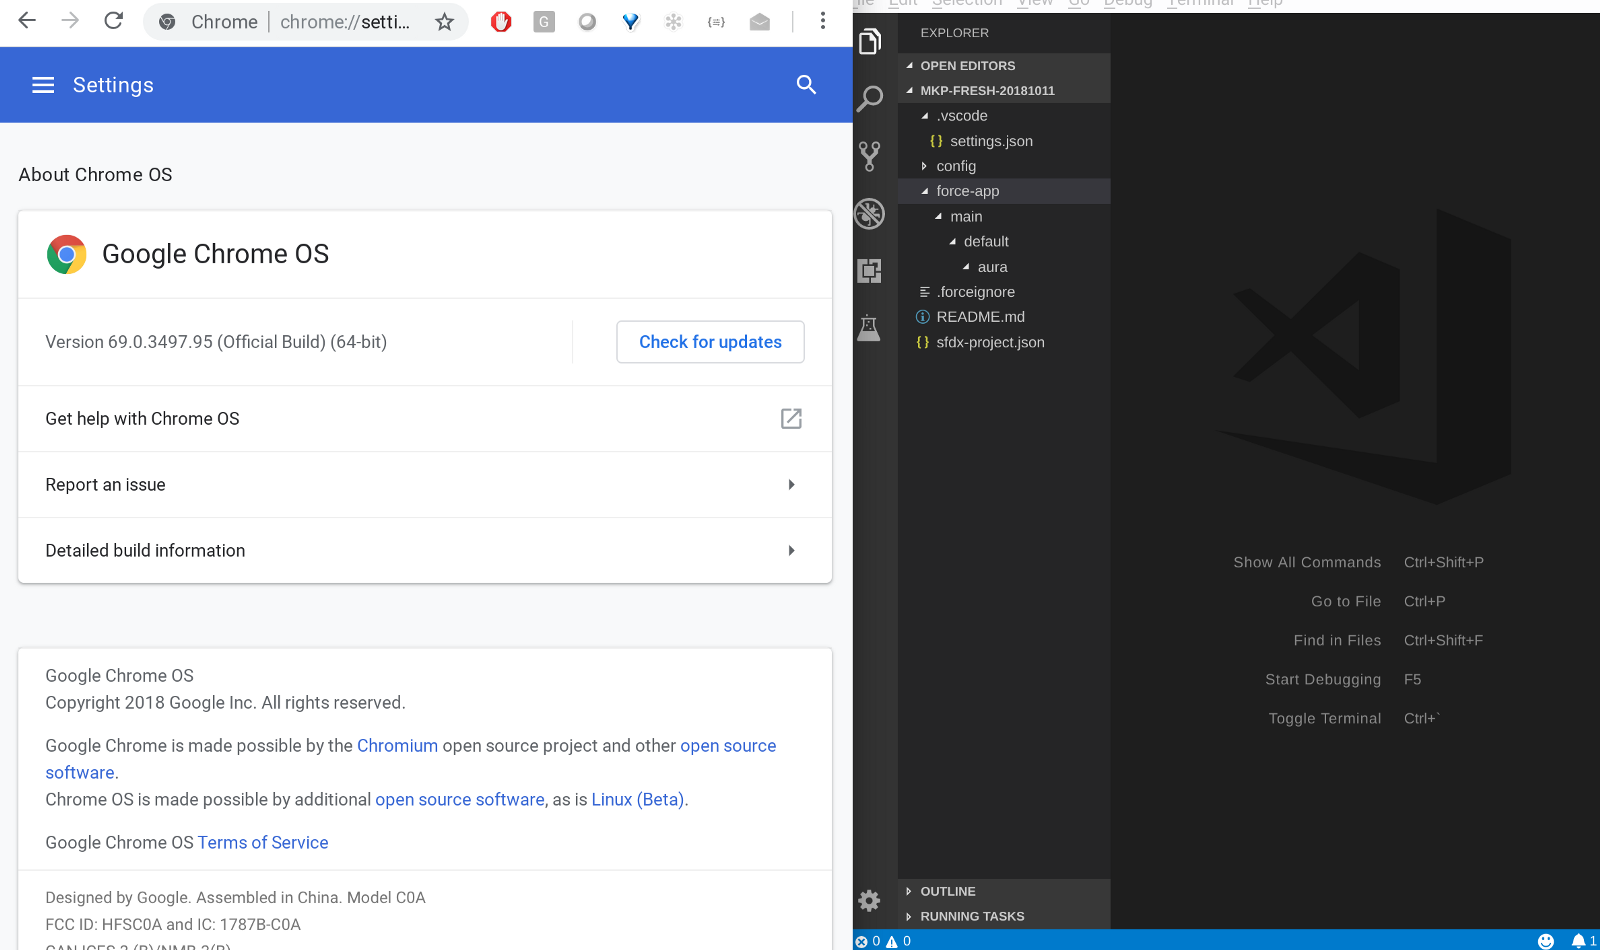 How to install vscode on chromebook | How to Use Skype on a